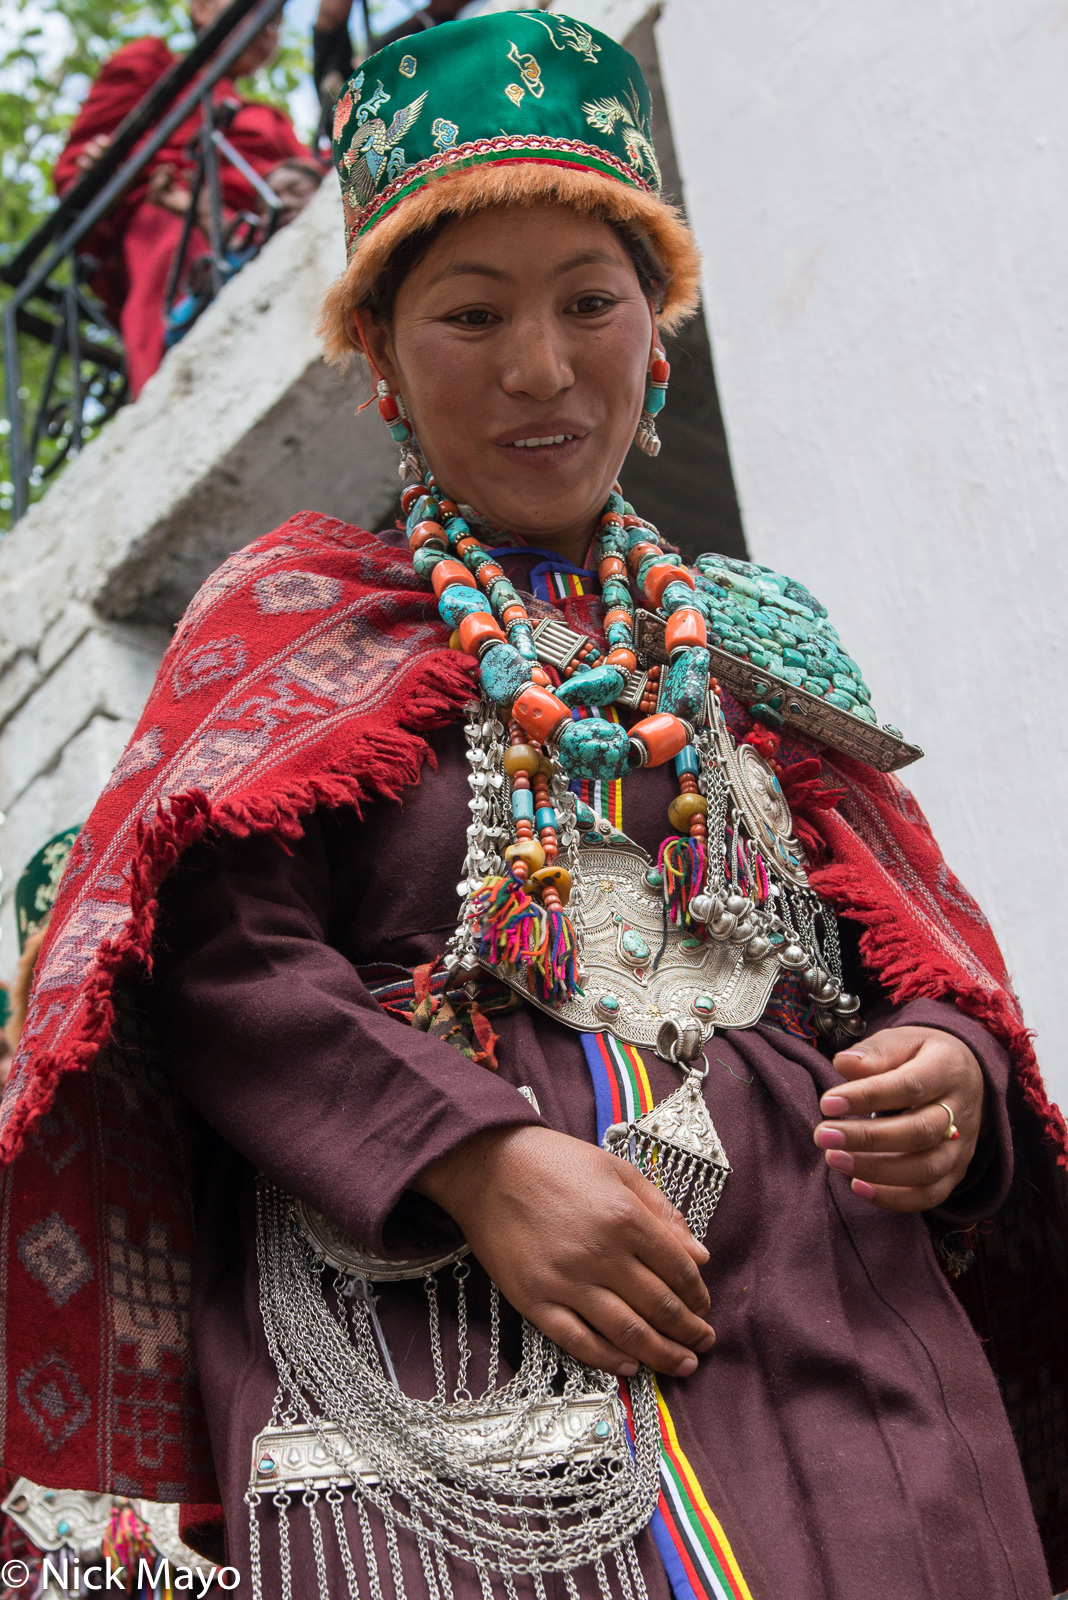 Breastpiece, Cape, Earring, Festival, Hat, Himachal Pradesh, India, Necklace, photo